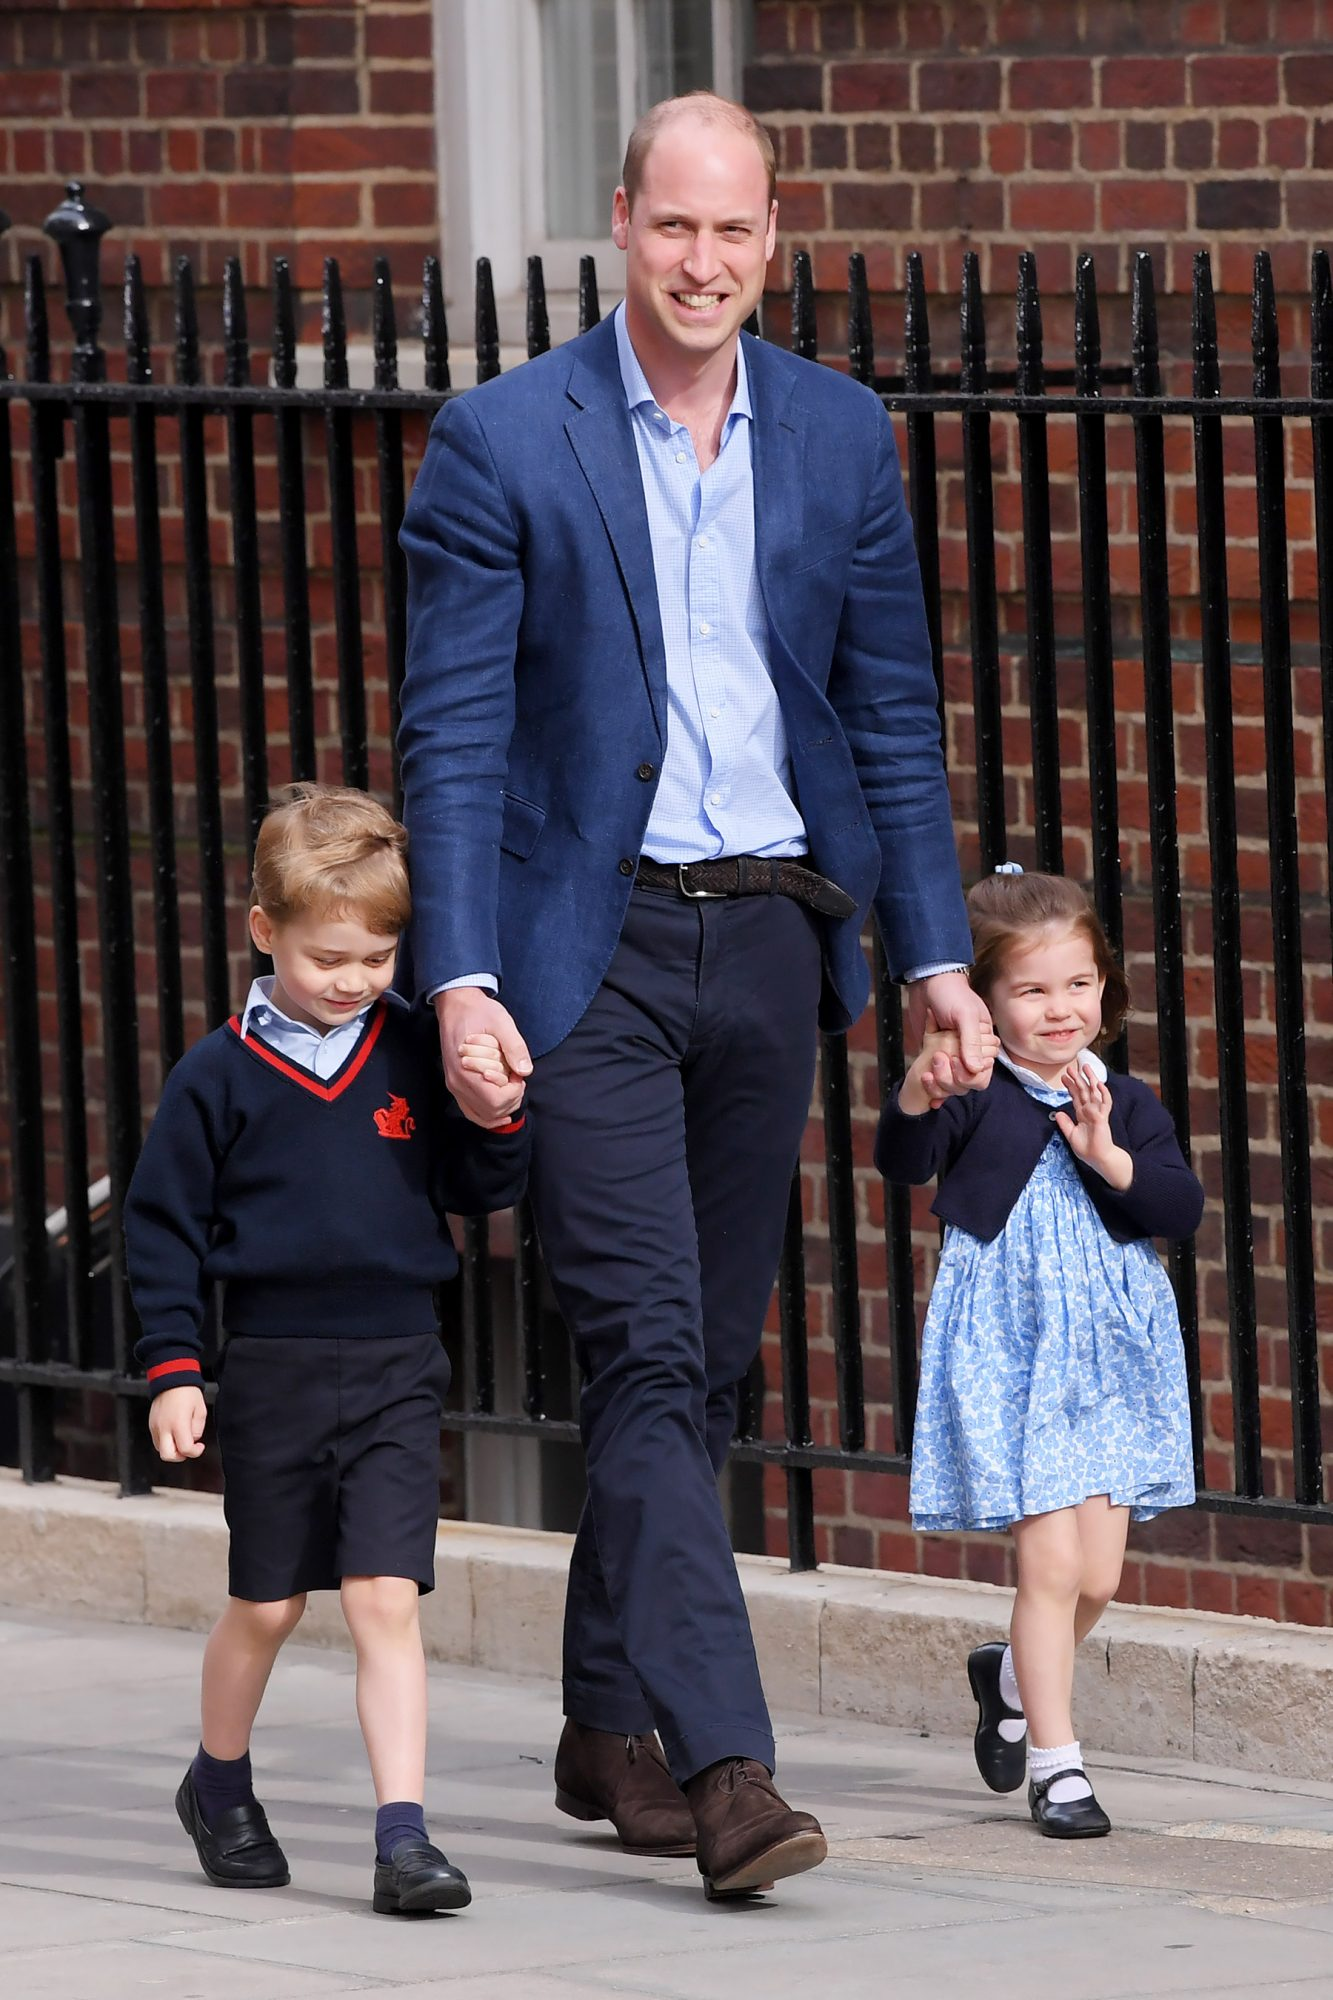 Prince William and Kate Middleton Celebrate Their Anniversary for the First Time as a Family of 5 prince-william-11